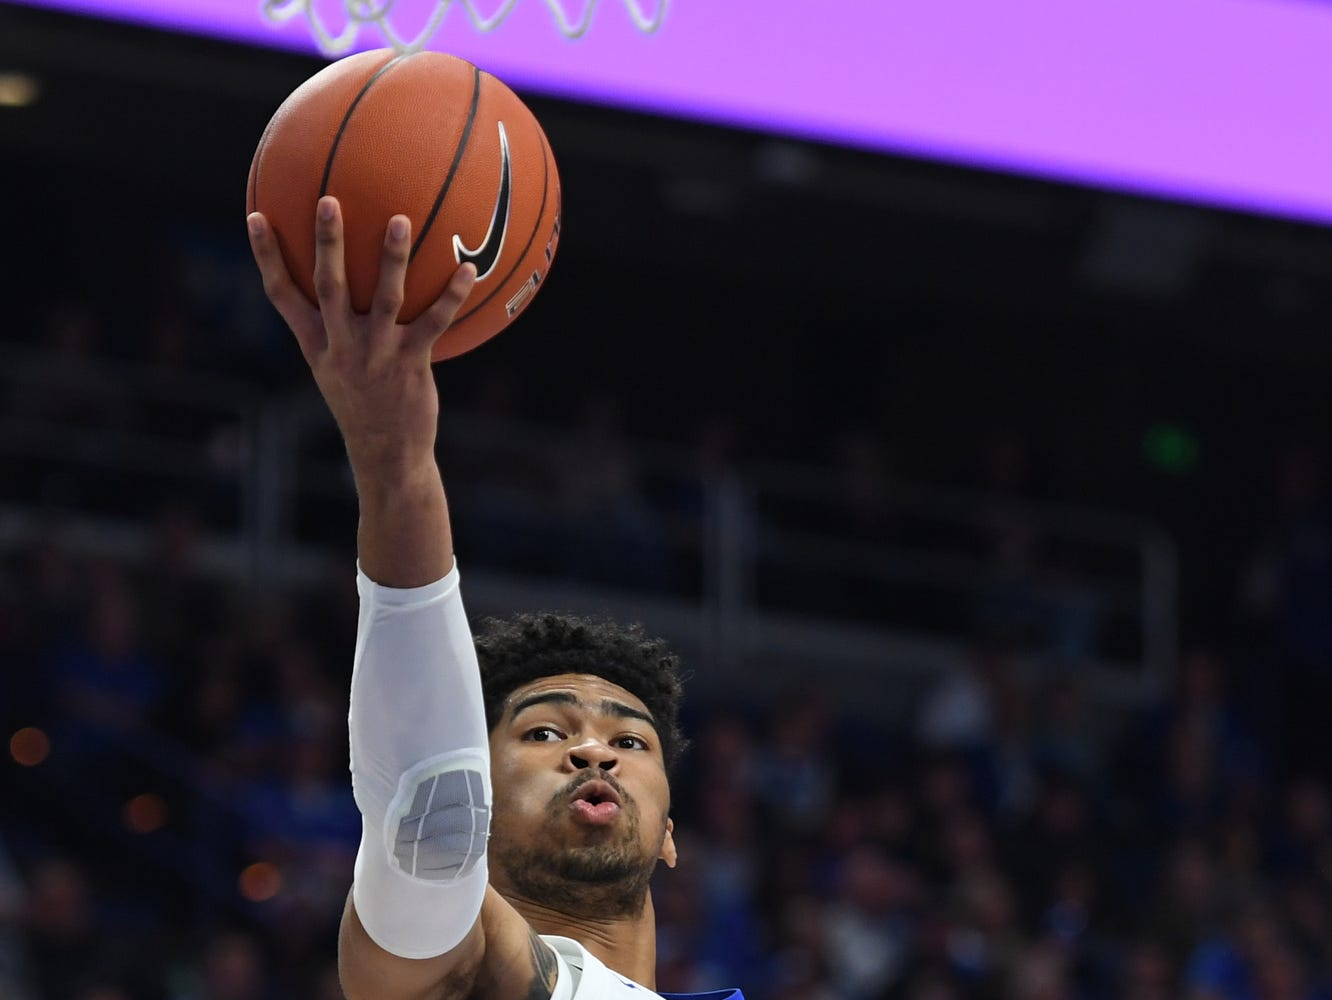 Nick Richards lays up the ball during the University of Kentucky basketball game against Transylvania at Rupp Arena in Lexington on Friday, Oct. 26, 2018.